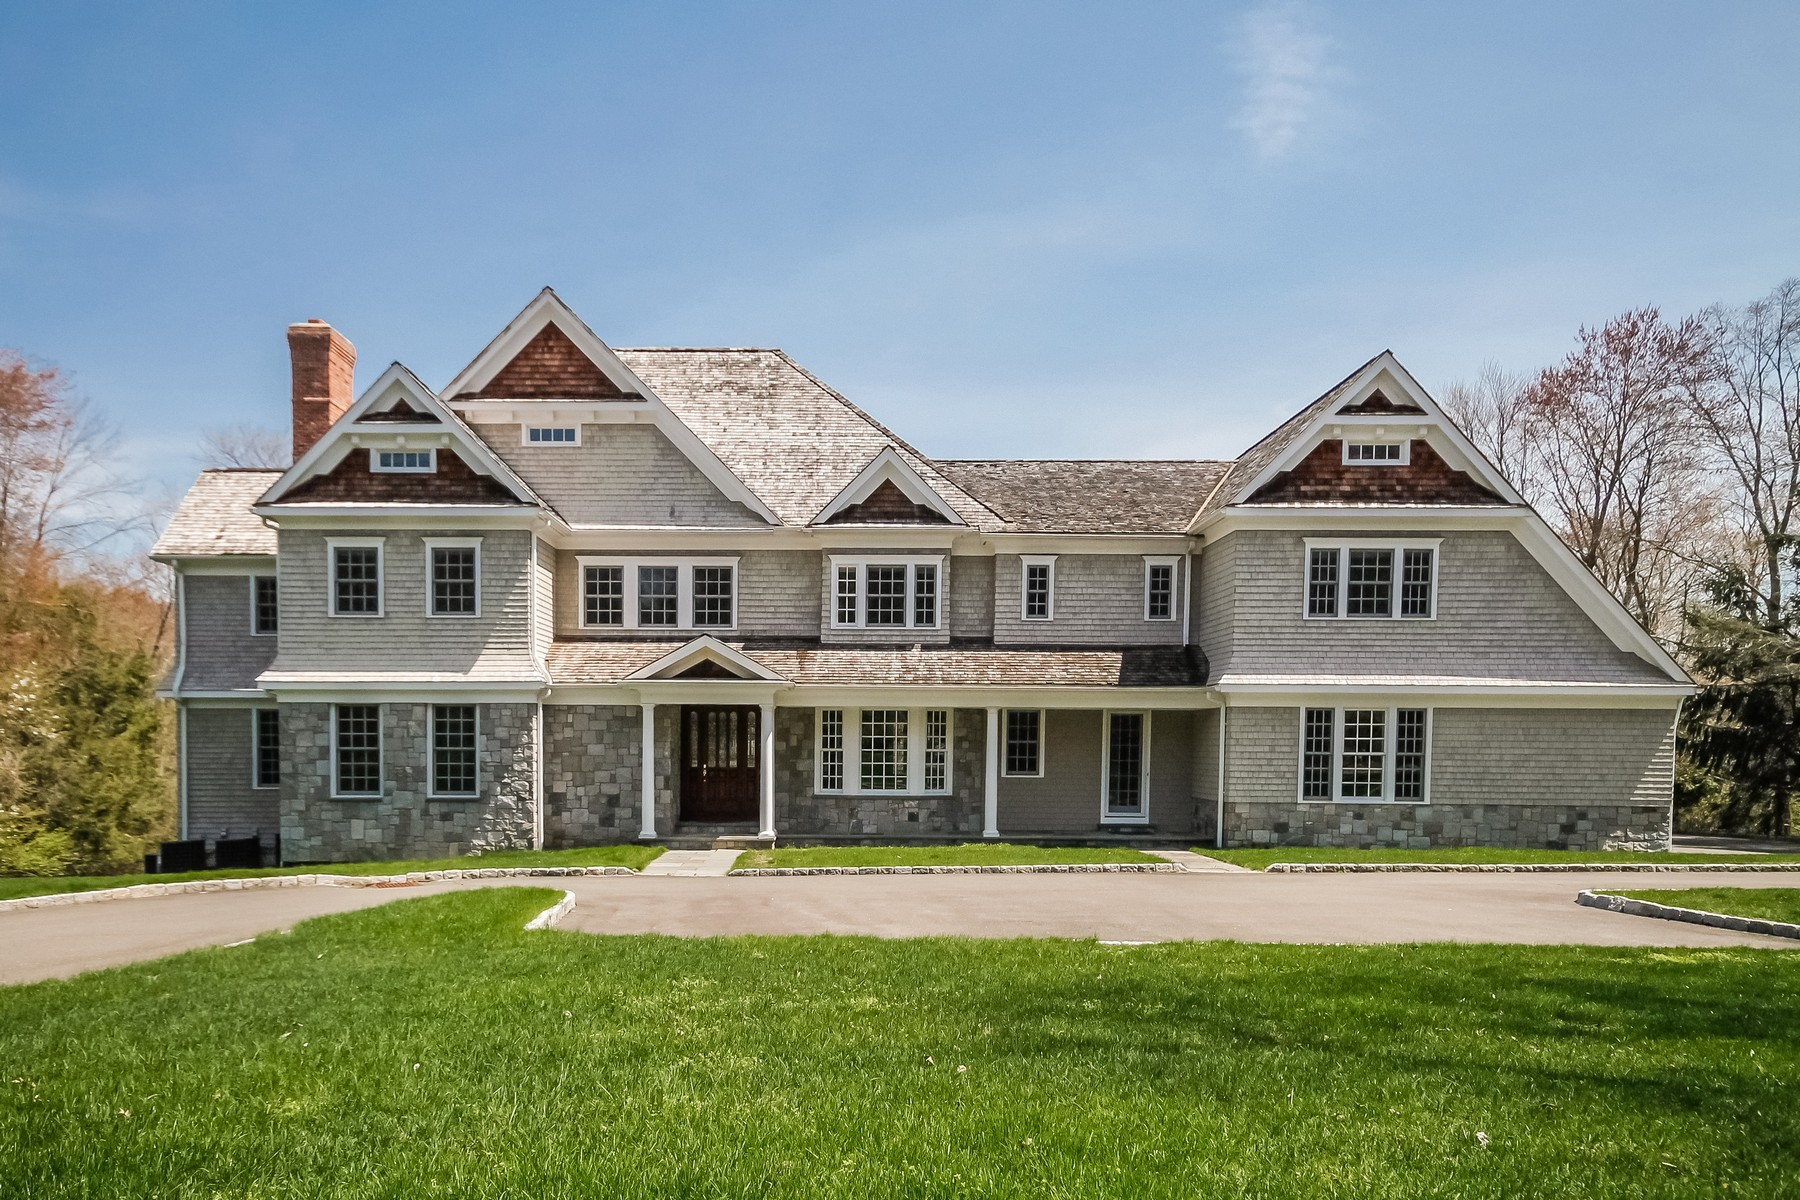 Casa Unifamiliar por un Venta en Exquisite Old Hill Colonial 38 Crawford Road Westport, Connecticut 06880 Estados Unidos